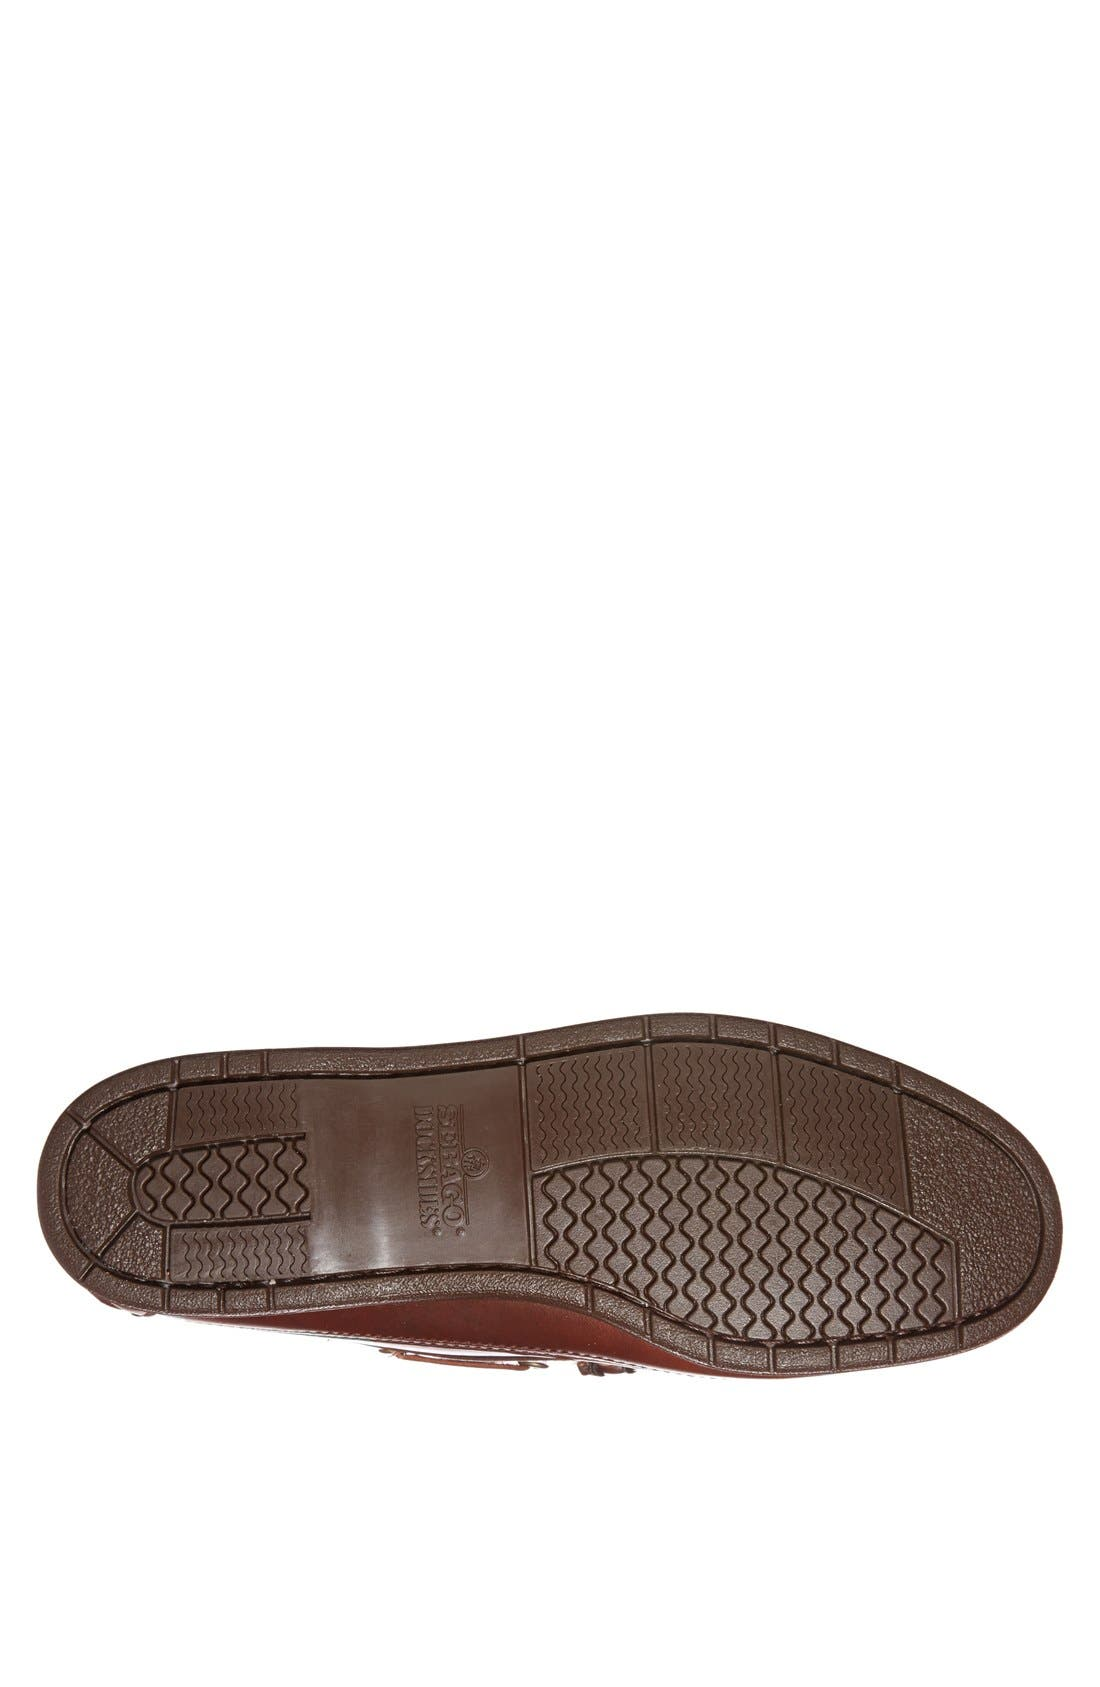 'Sloop' Penny Loafer,                             Alternate thumbnail 4, color,                             Brown